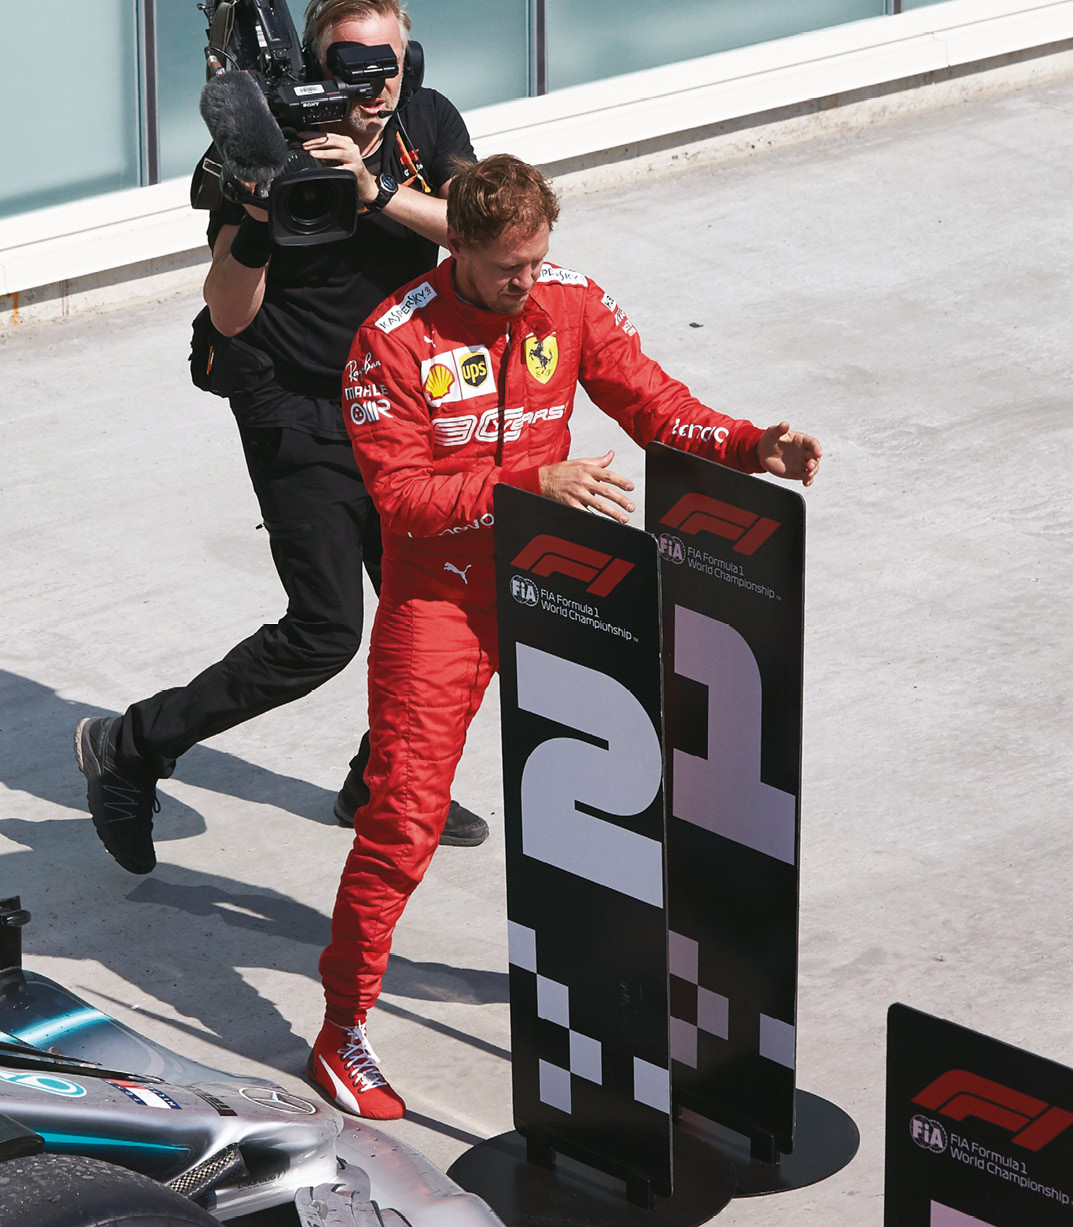 An irate Vettel plays to the crowd by swapping the number boards under the podium in Canada